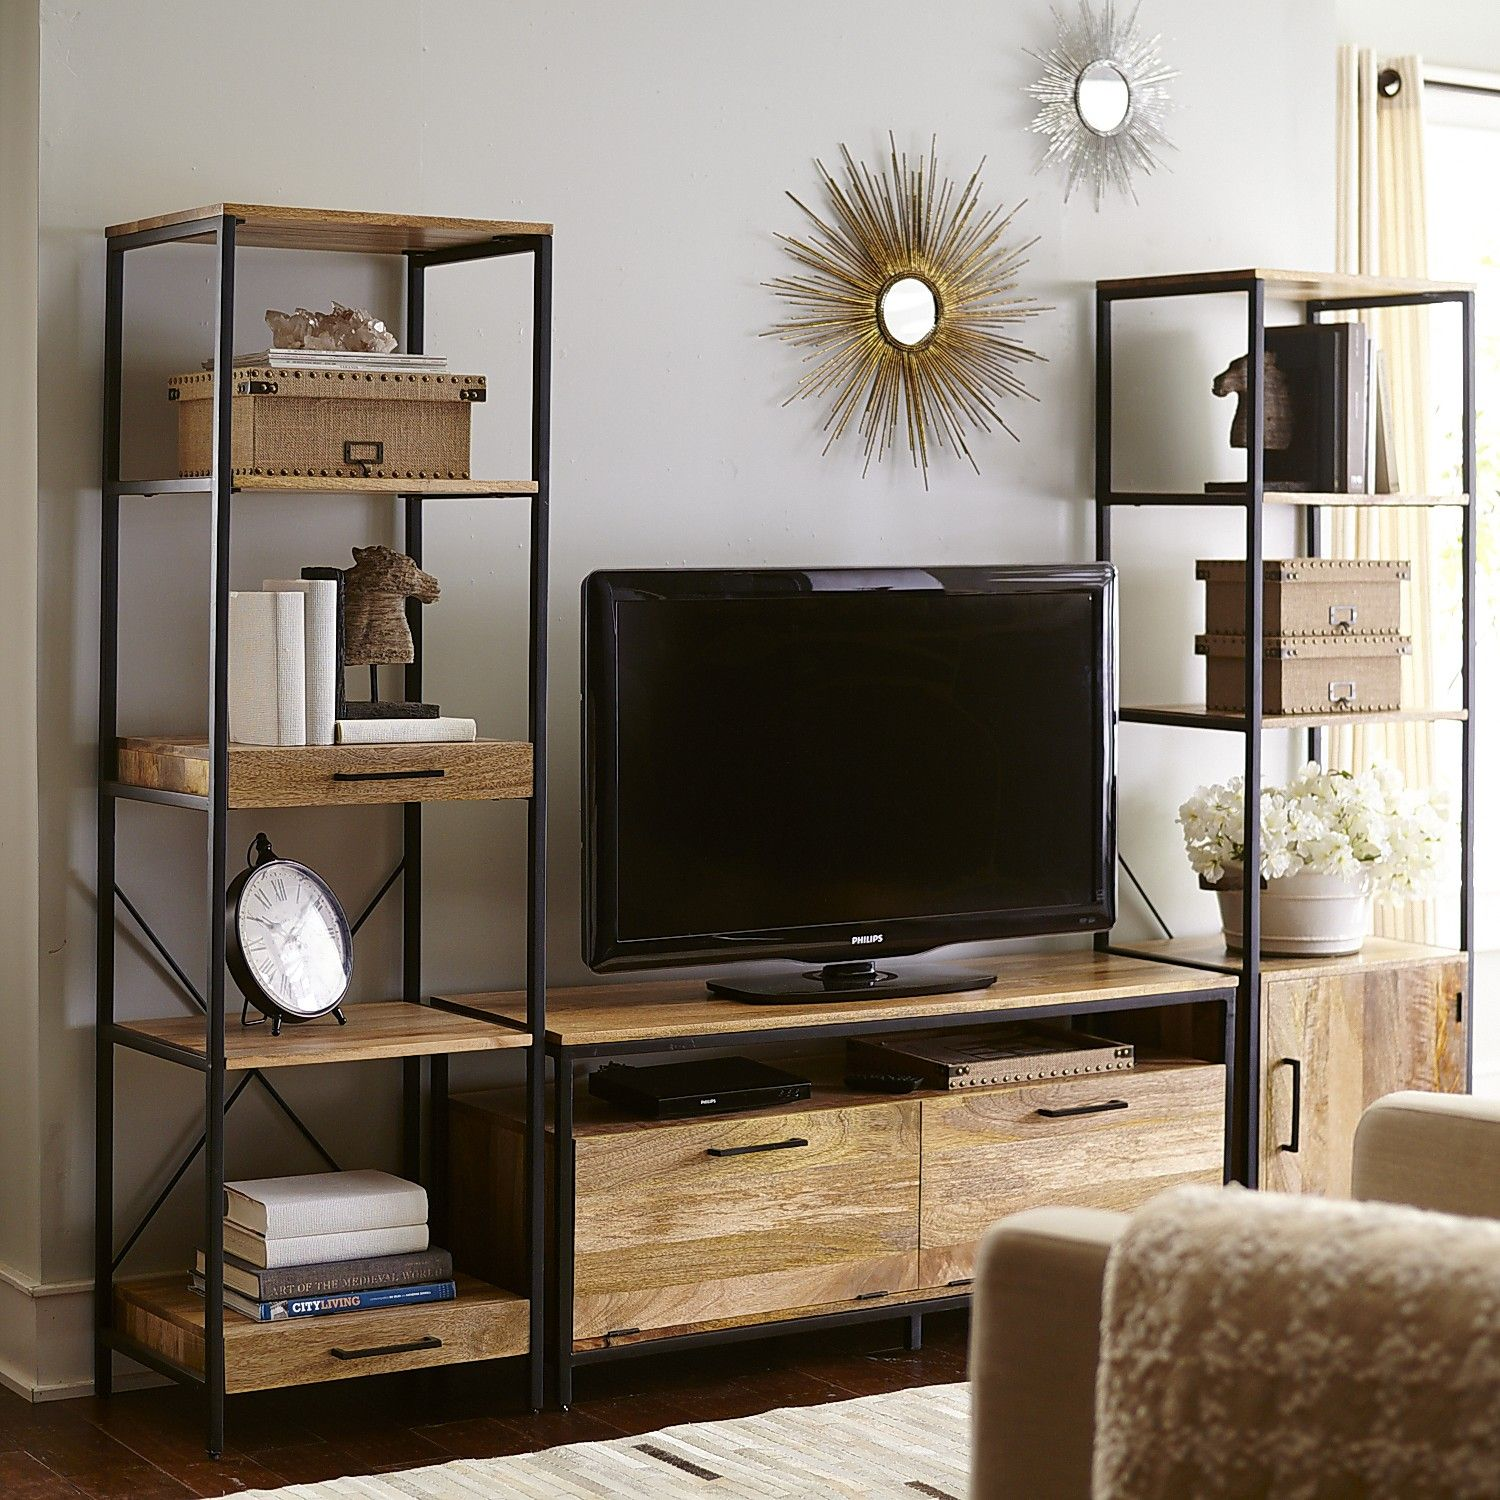 tvs stand tv espresso to nash walmart ameriwood up bookcase bookcases home com with for ip